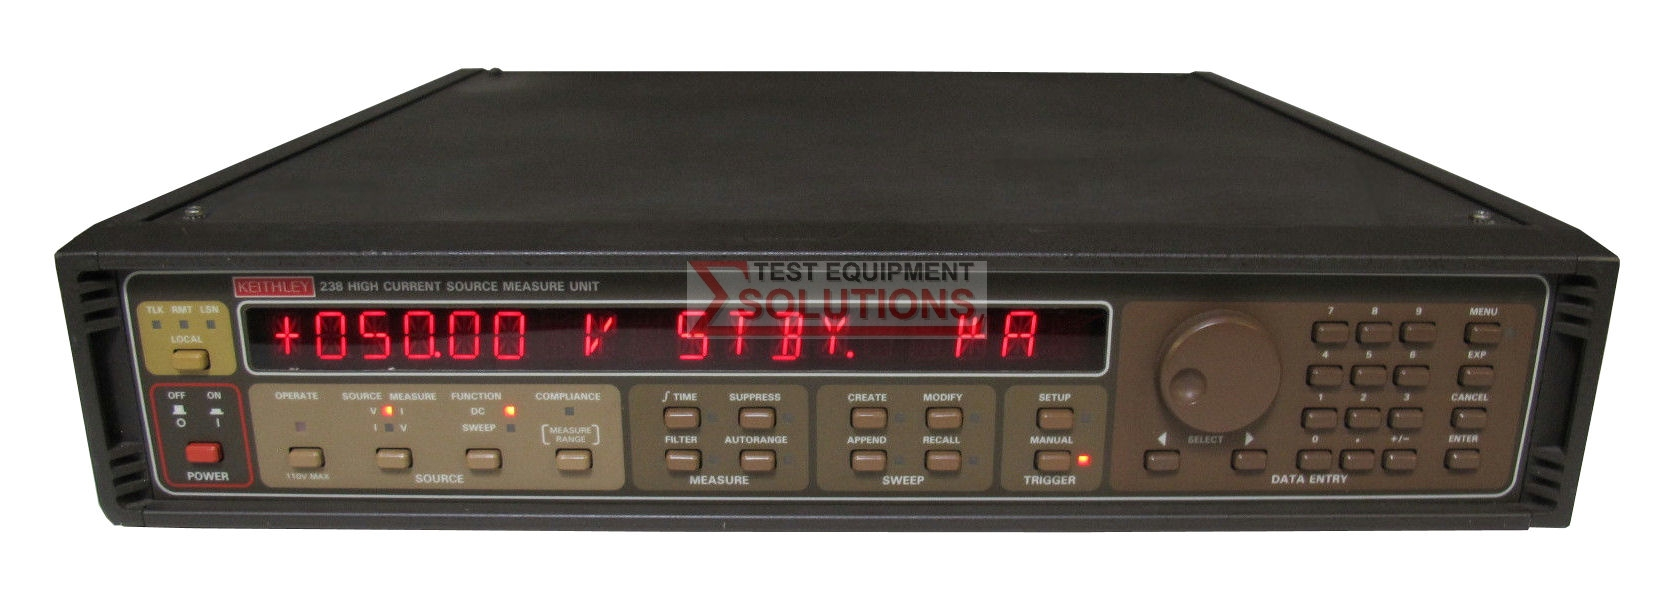 KEITHLEY 238 600H